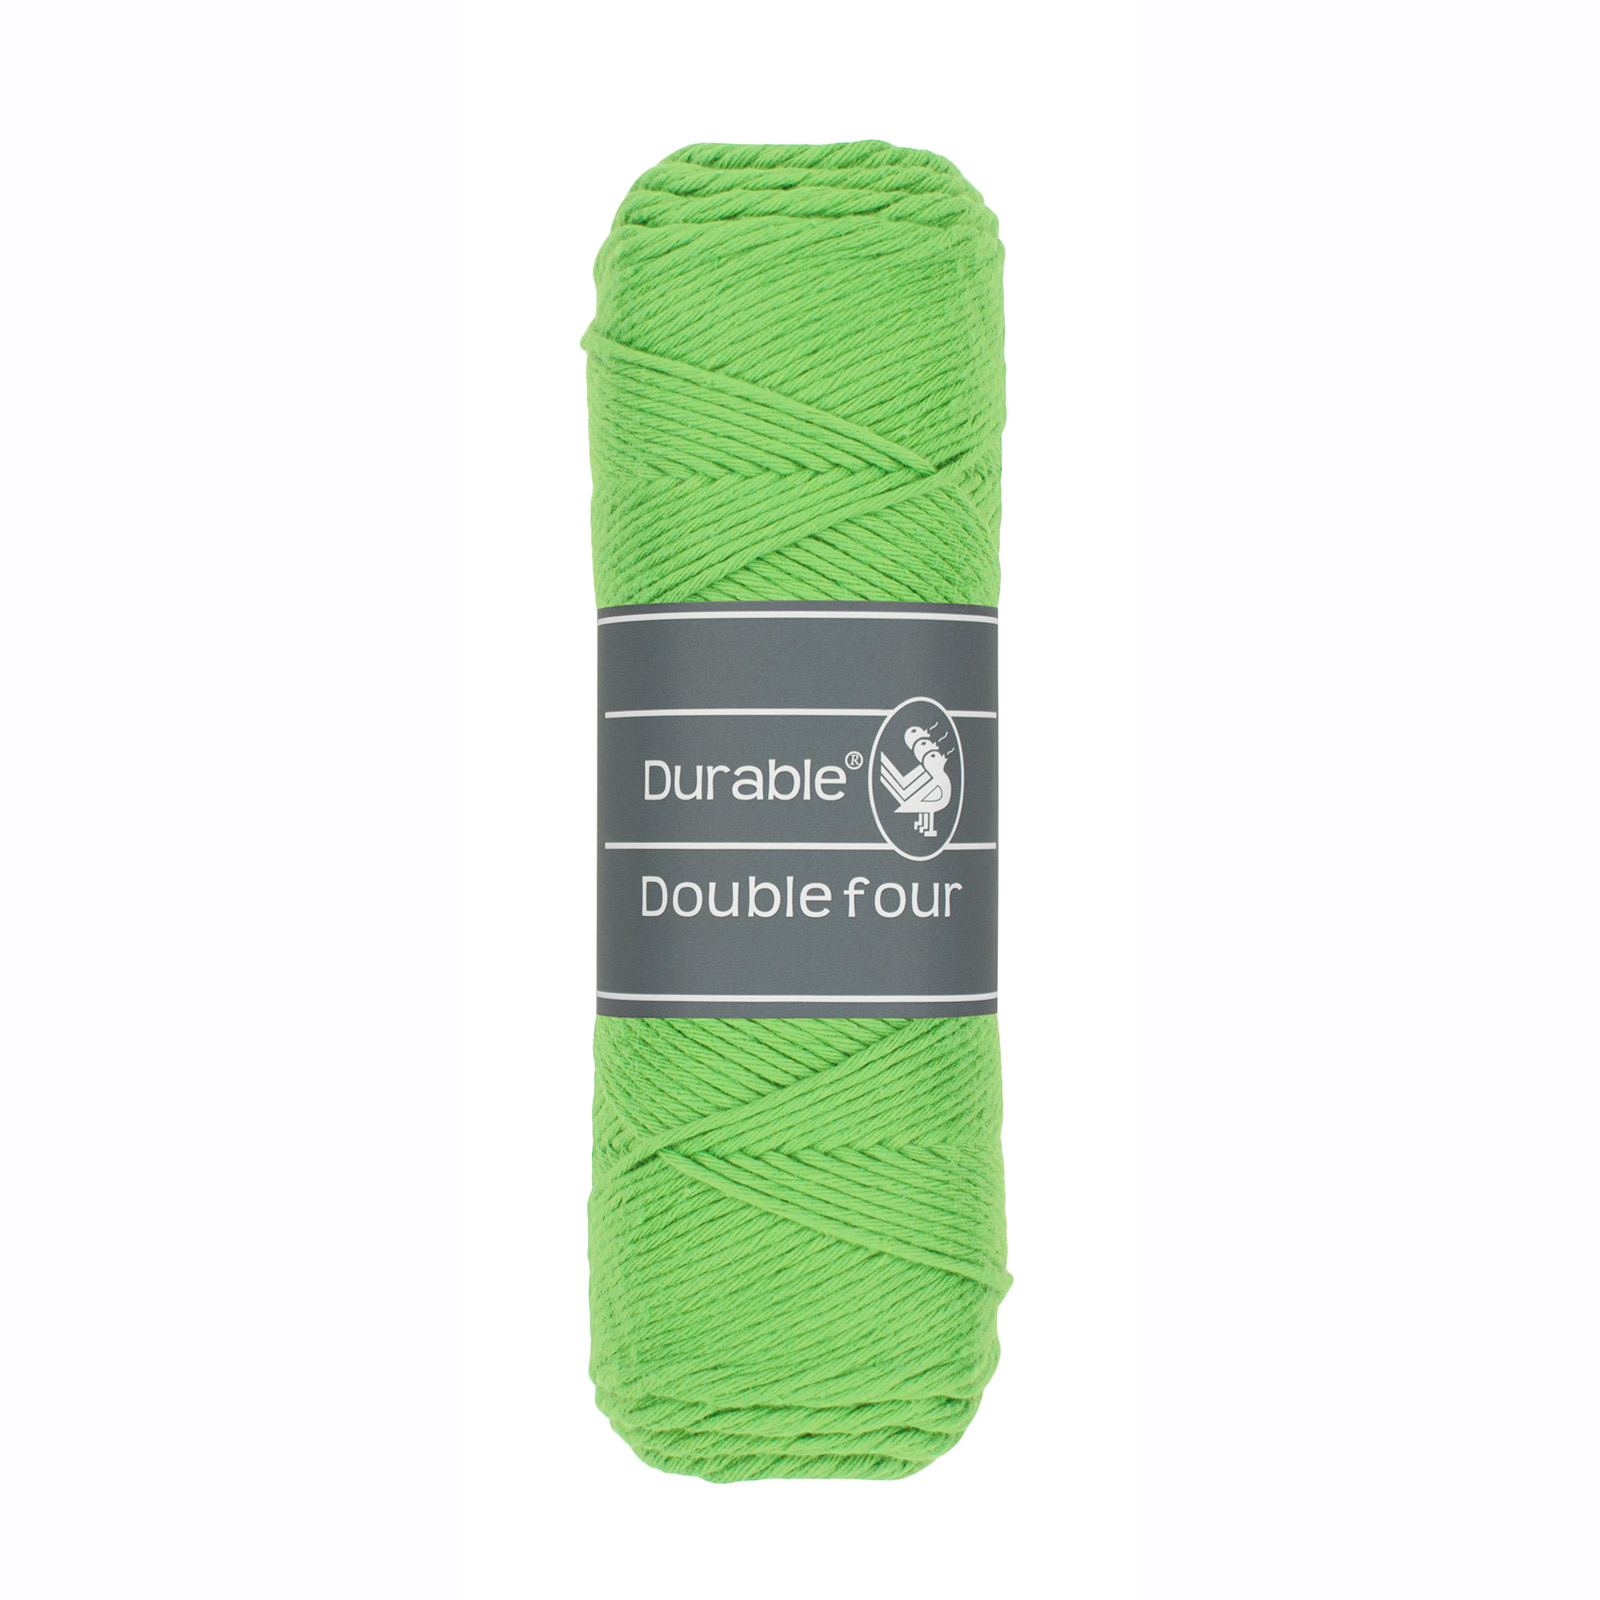 Durable Double Four – 2155 Apple Green